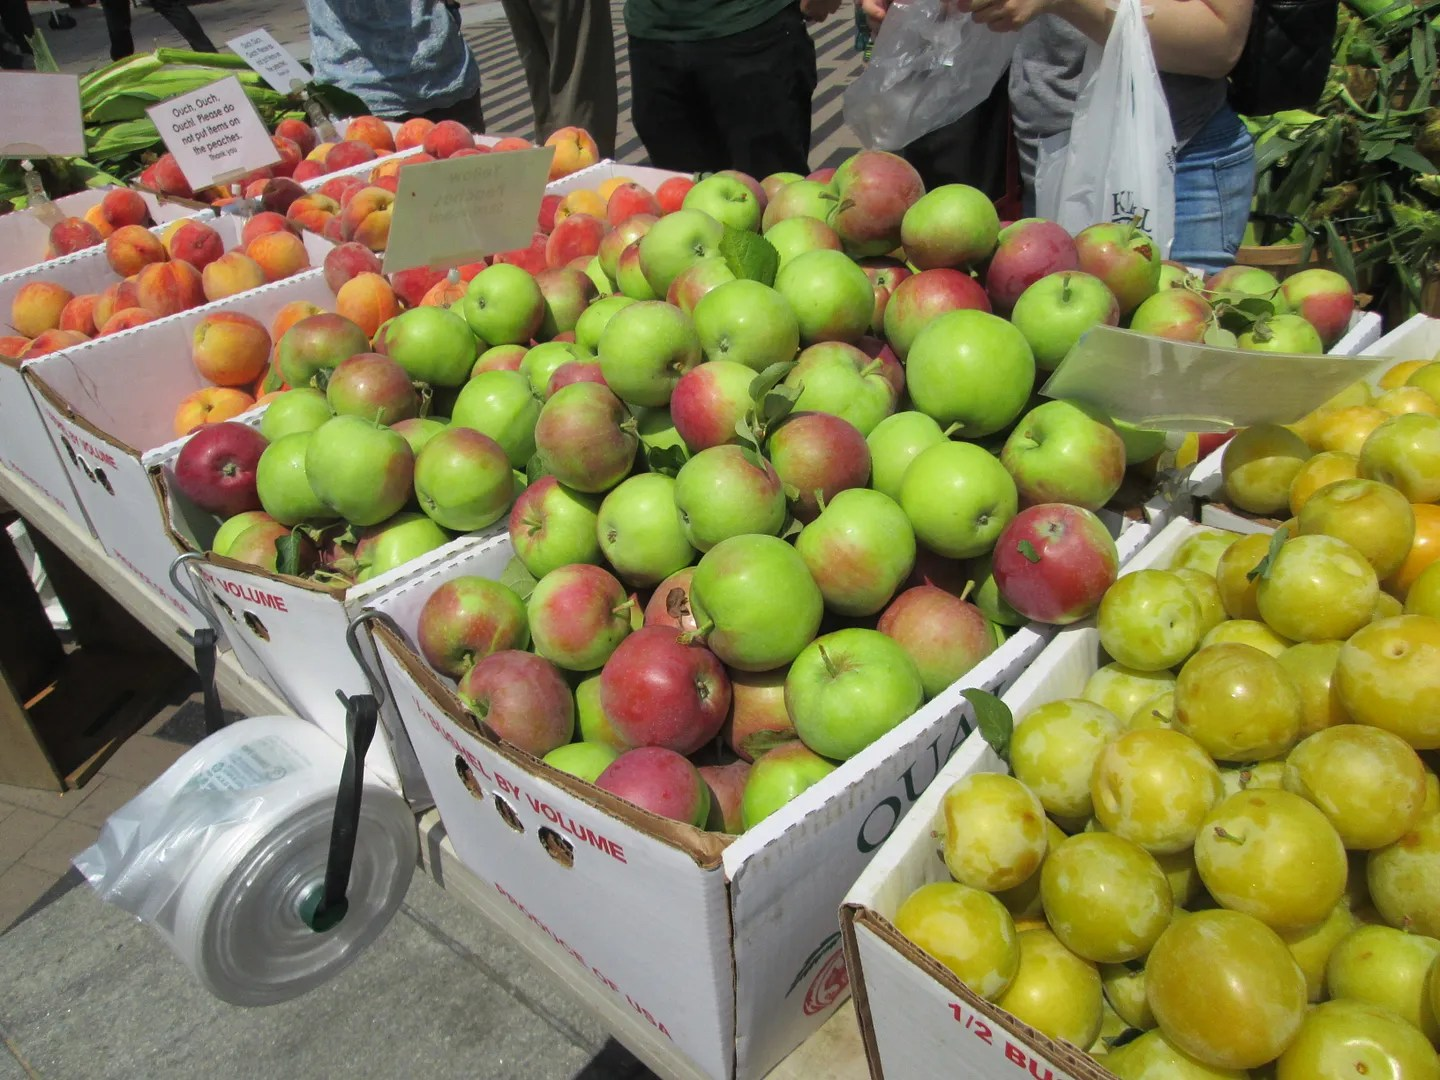 boxes of apples, peaches, and yellow plums at the farmers market